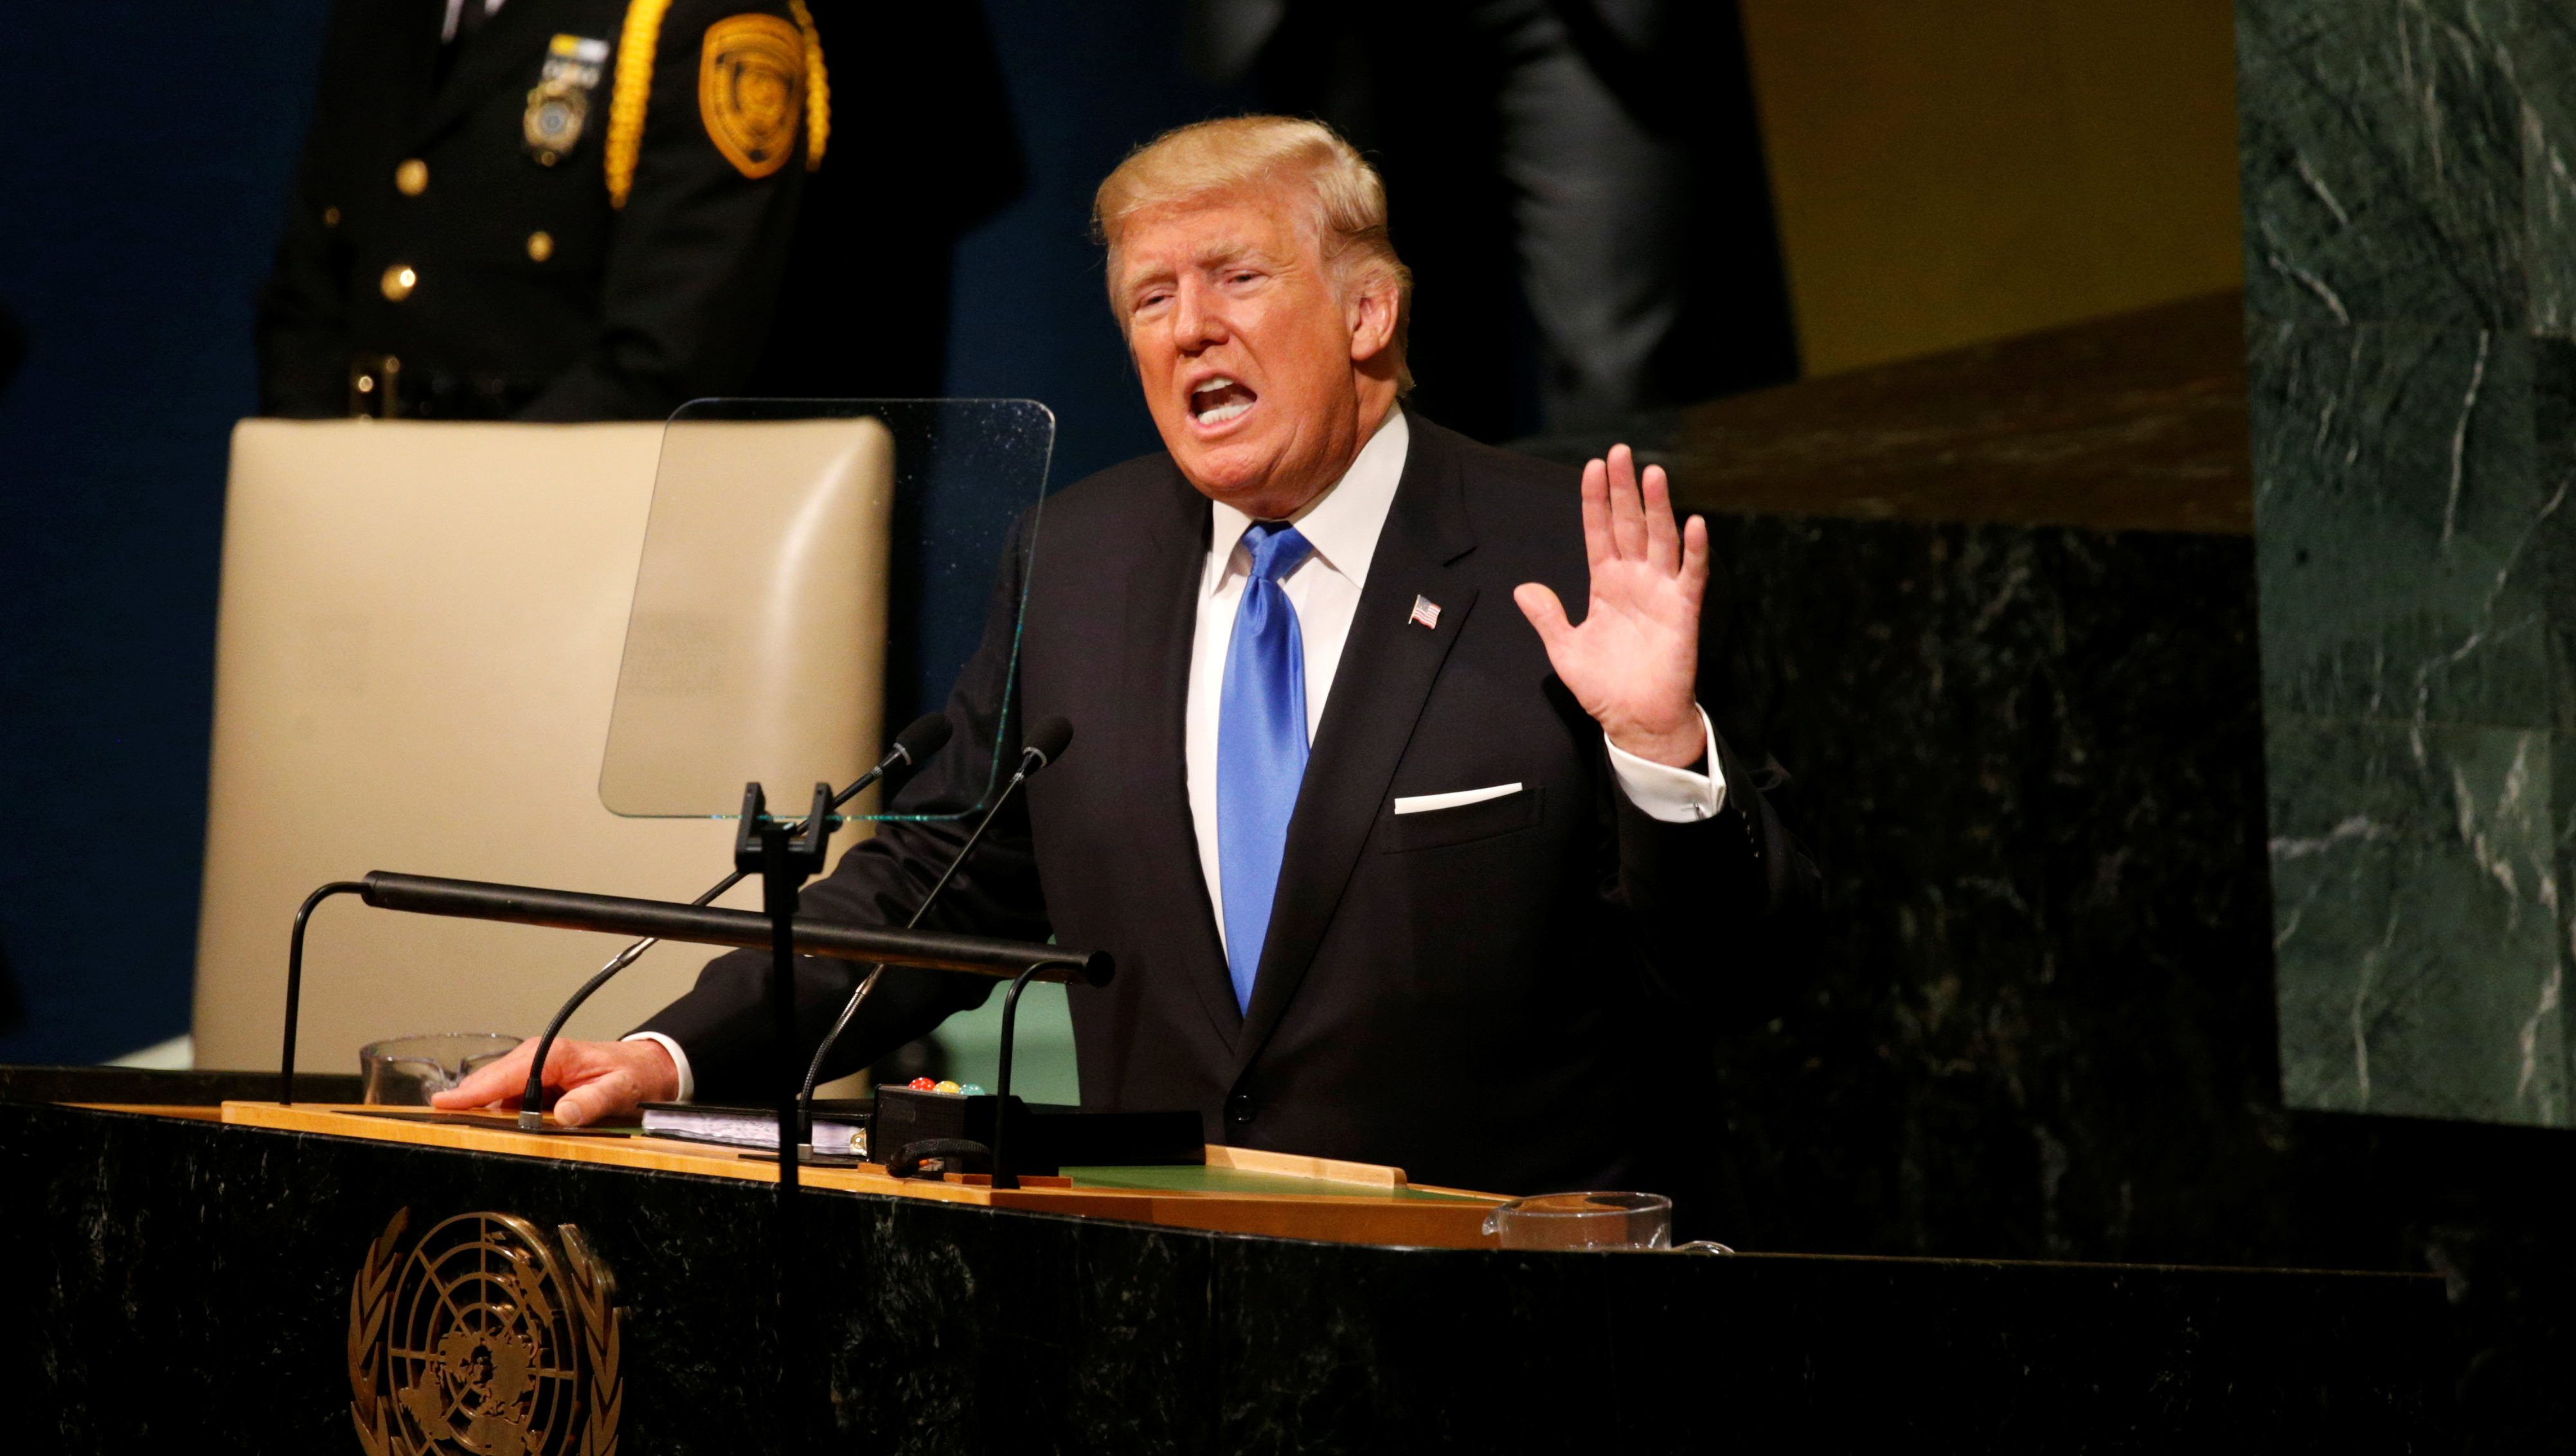 U.S. President Donald Trump delivers his address to the United Nations General Assembly in New York, U.S., September 19, 2017. REUTERS/Kevin Lamarque - RC194E4E9AE0